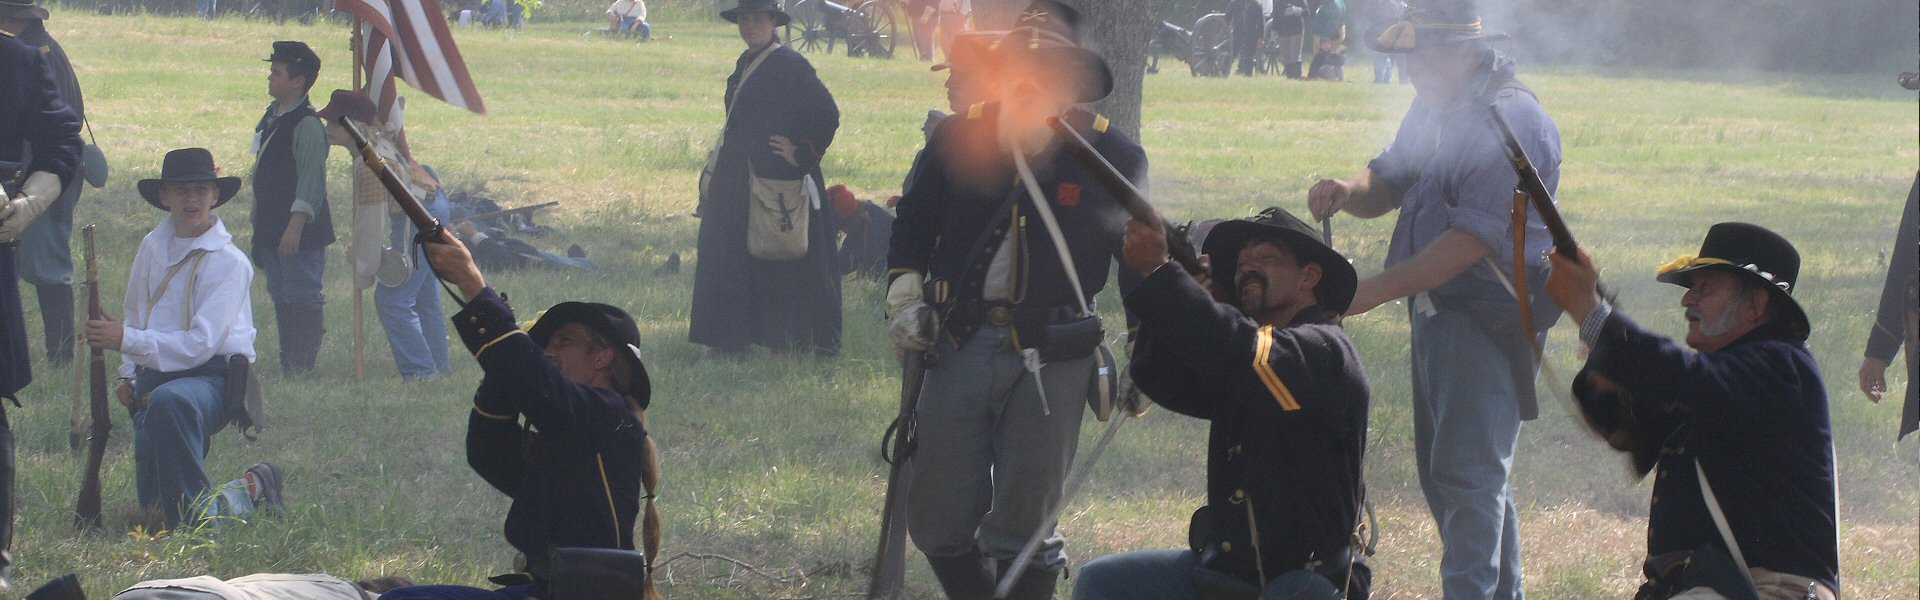 Faire Texas Civil War Museum Civil War Reenactment Jefferson Texas